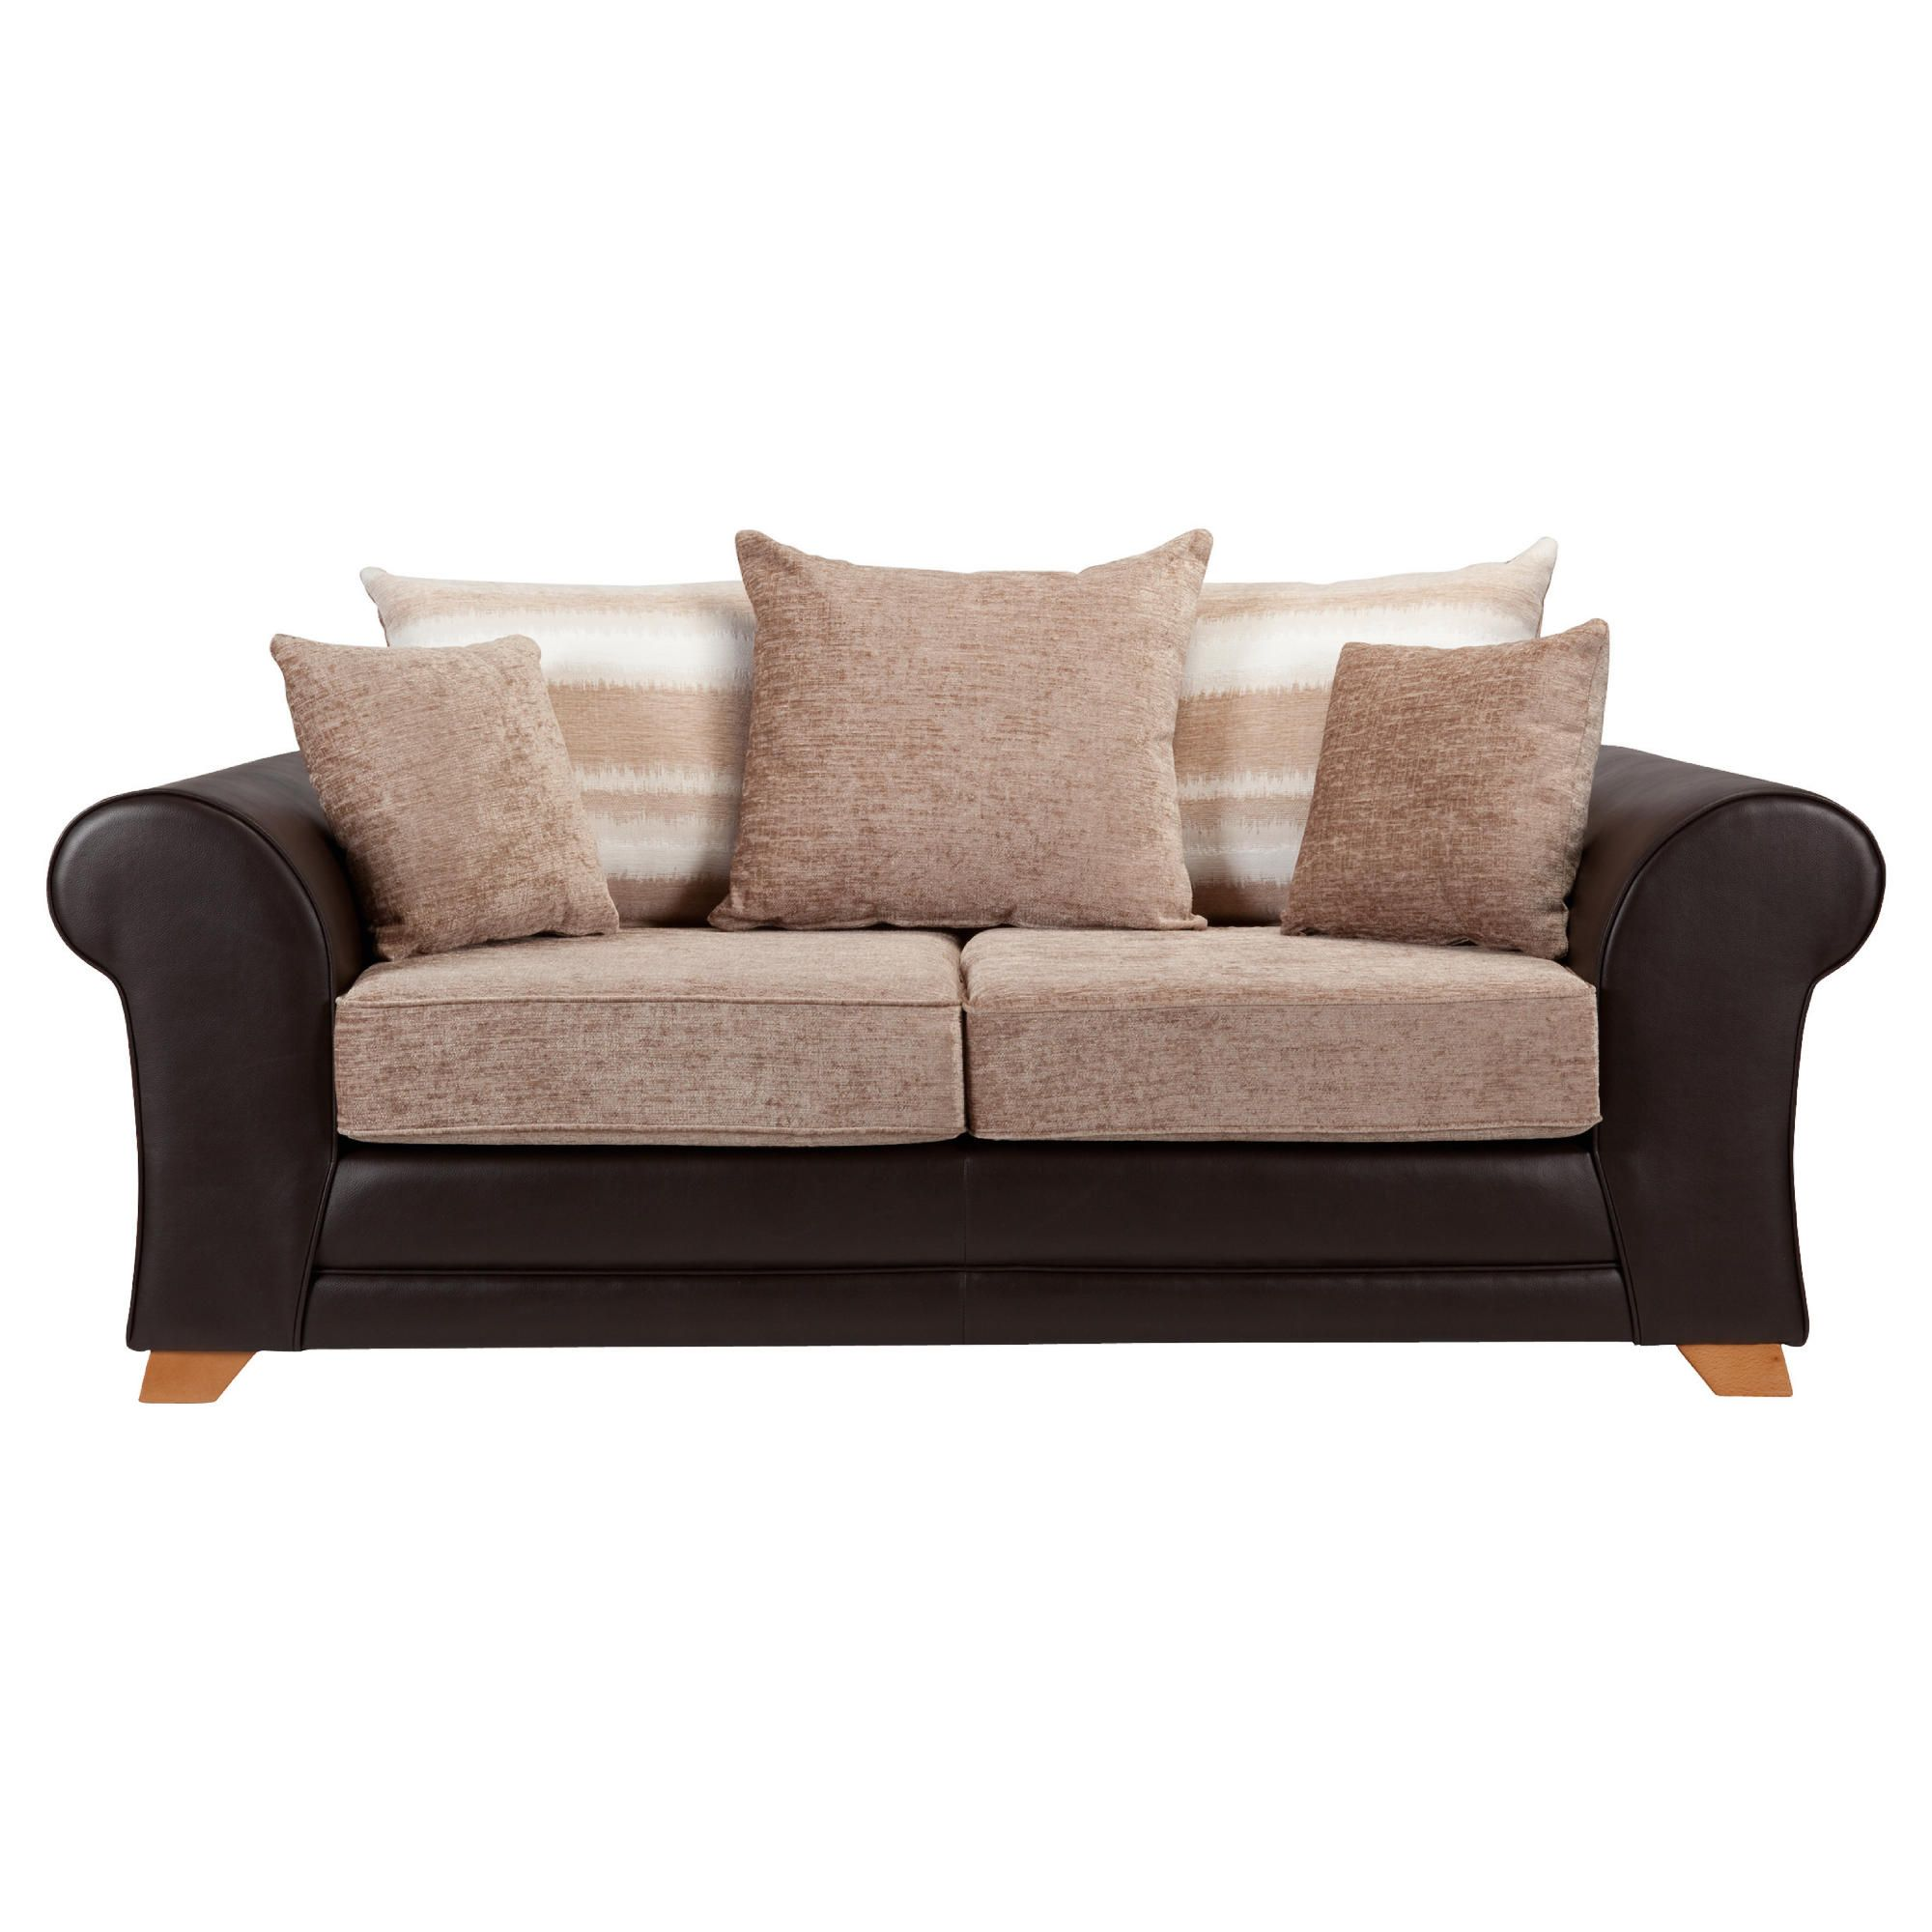 Leather Sofas Corner Sofas Sofa Beds Chesterfield Sofas